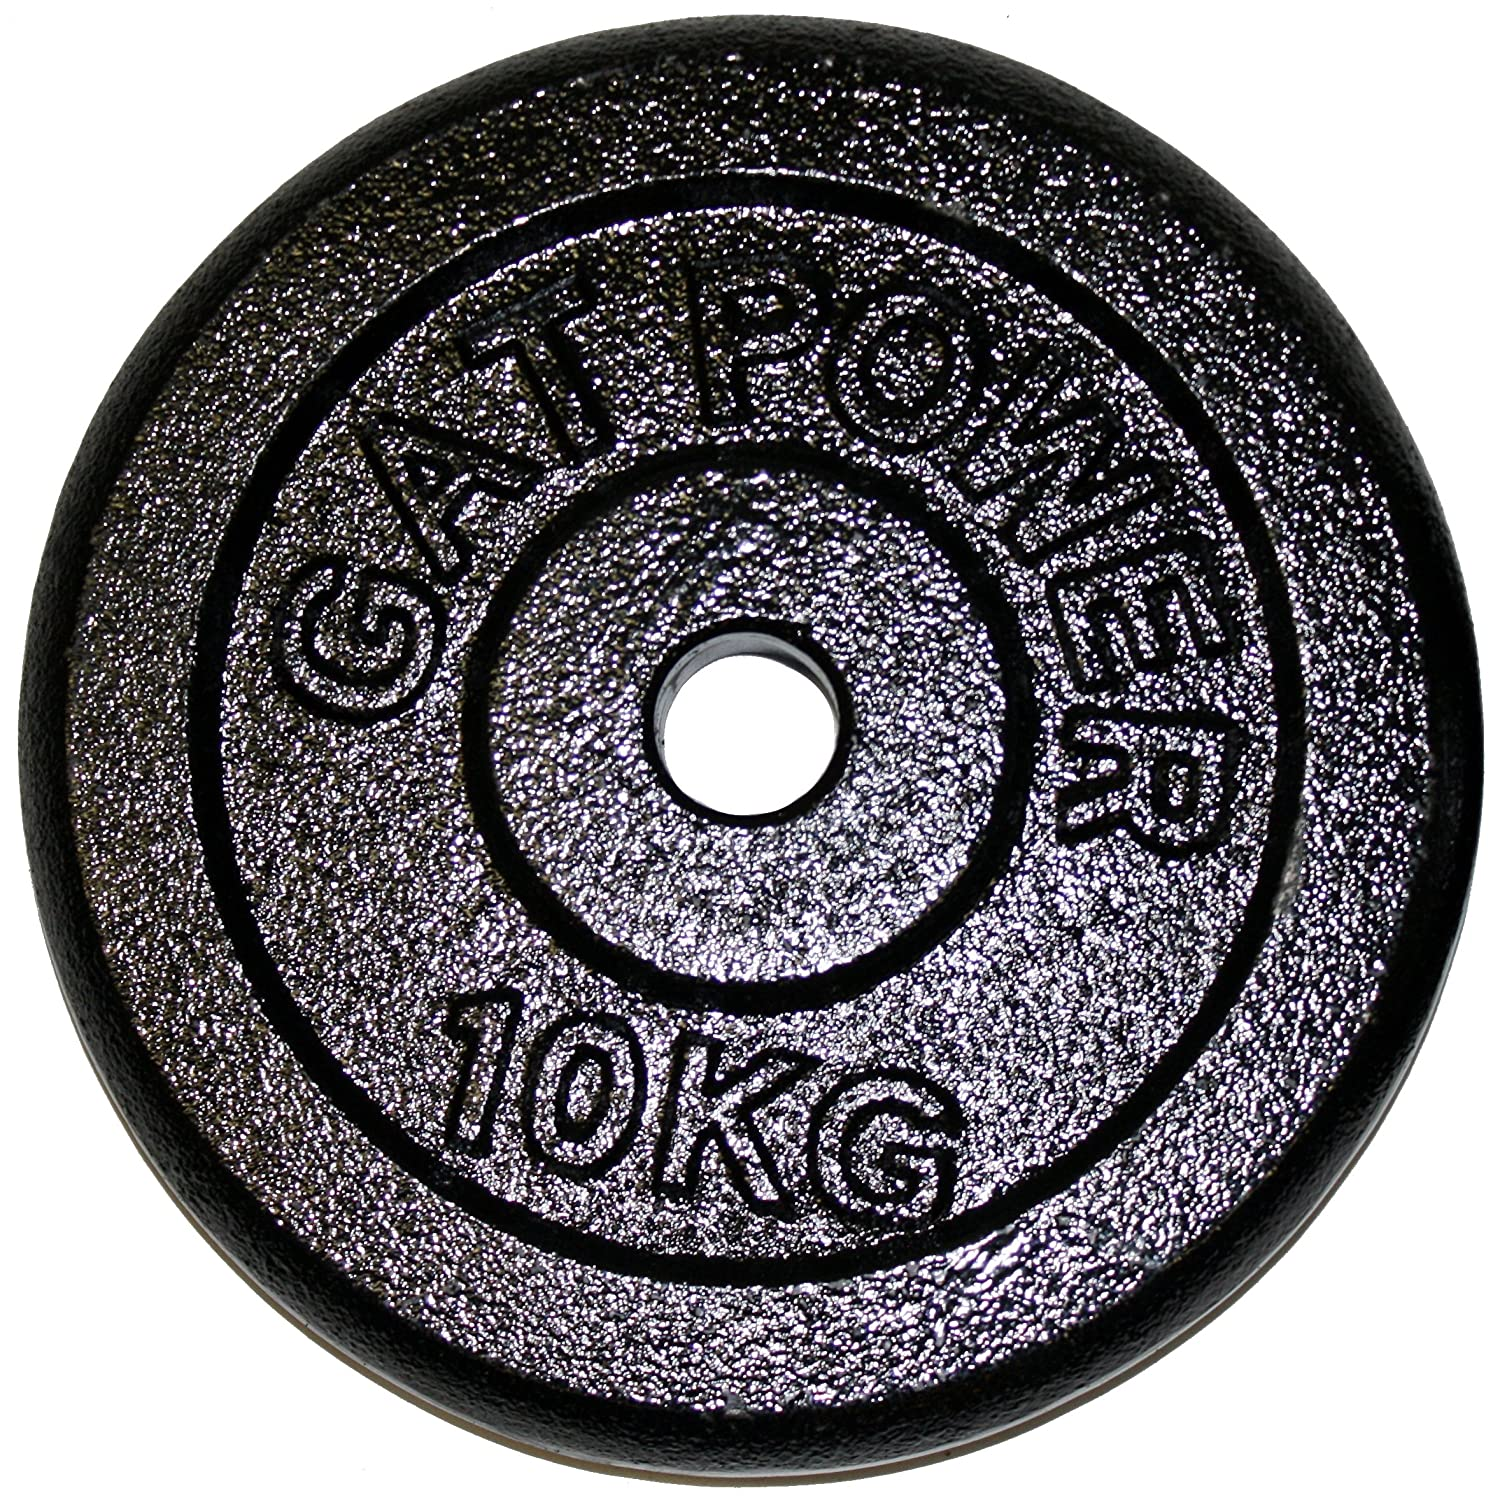 Gat Slim 90002013 Barbell Weights 10 kg Solid Cast Iron